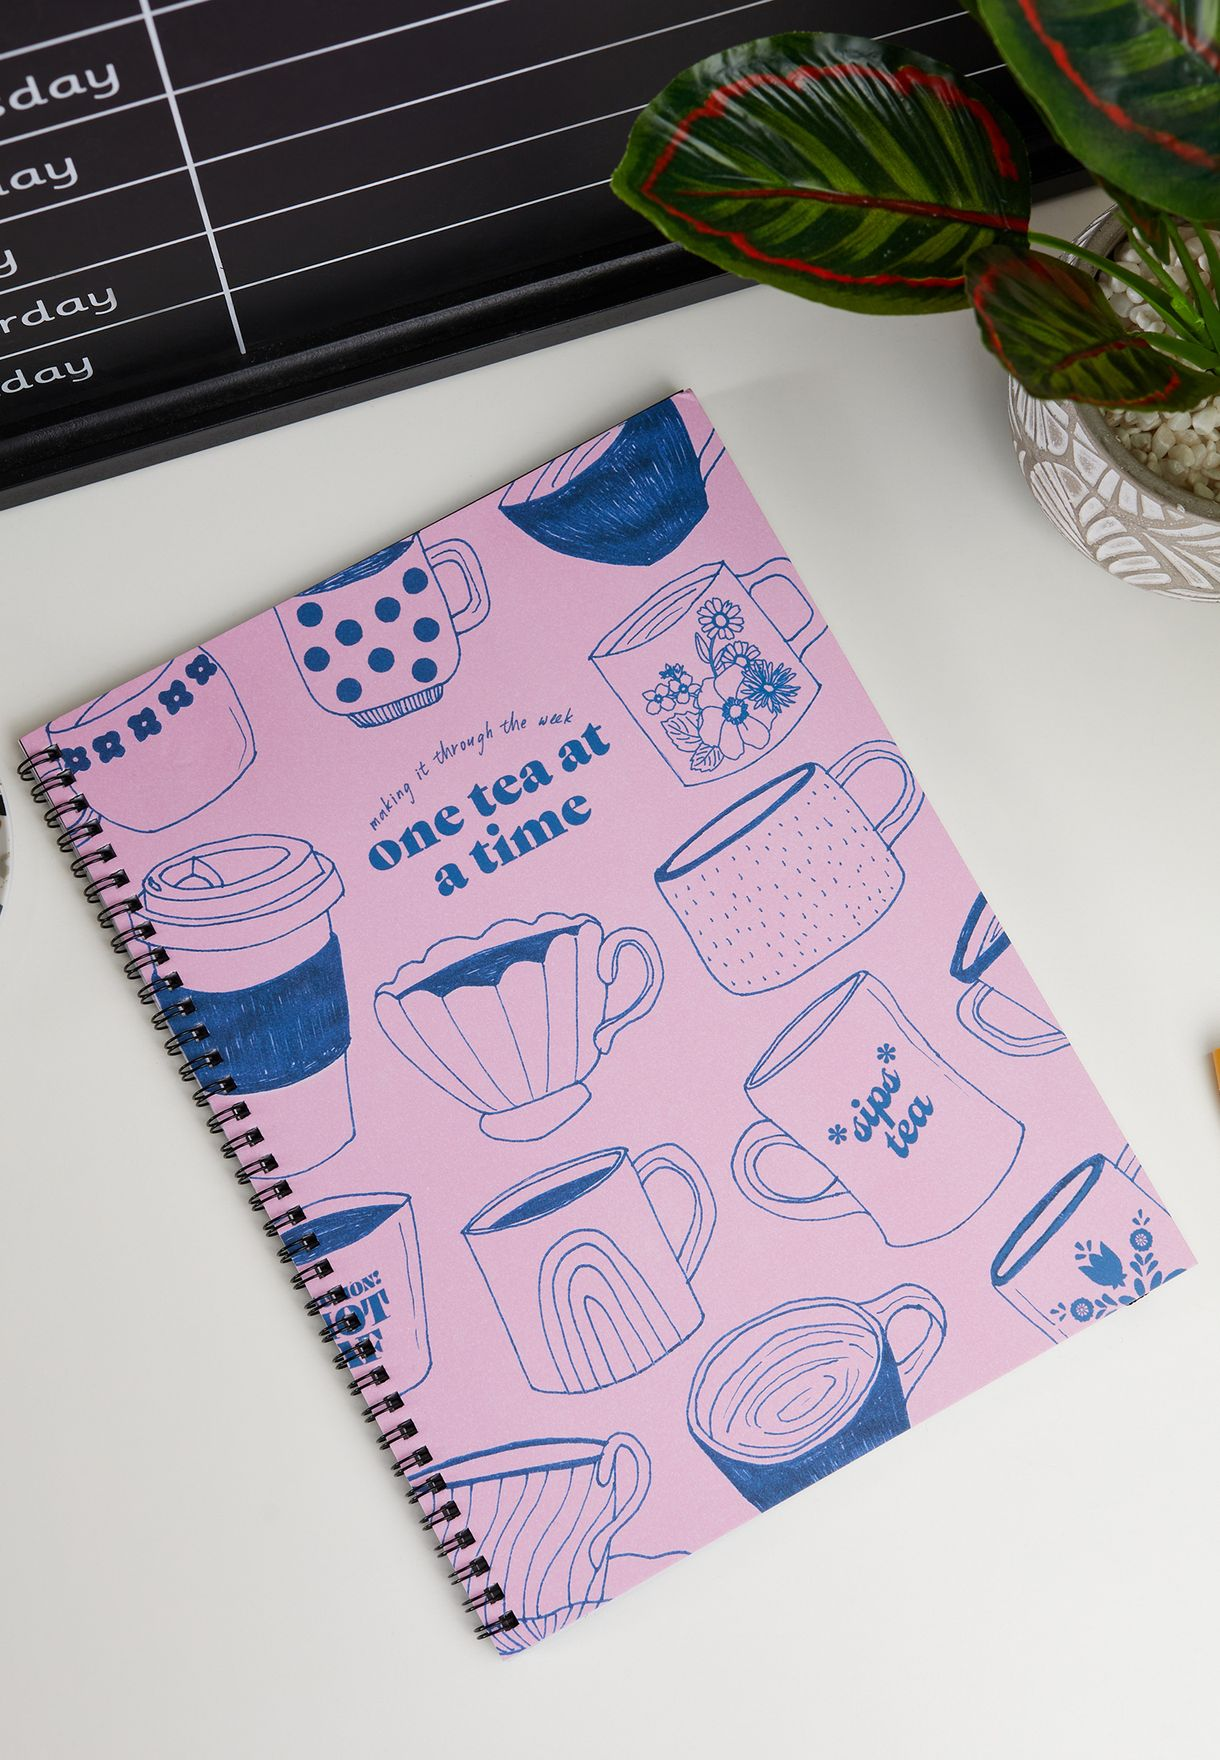 A4 Uk Pinktea Spinout Notebook